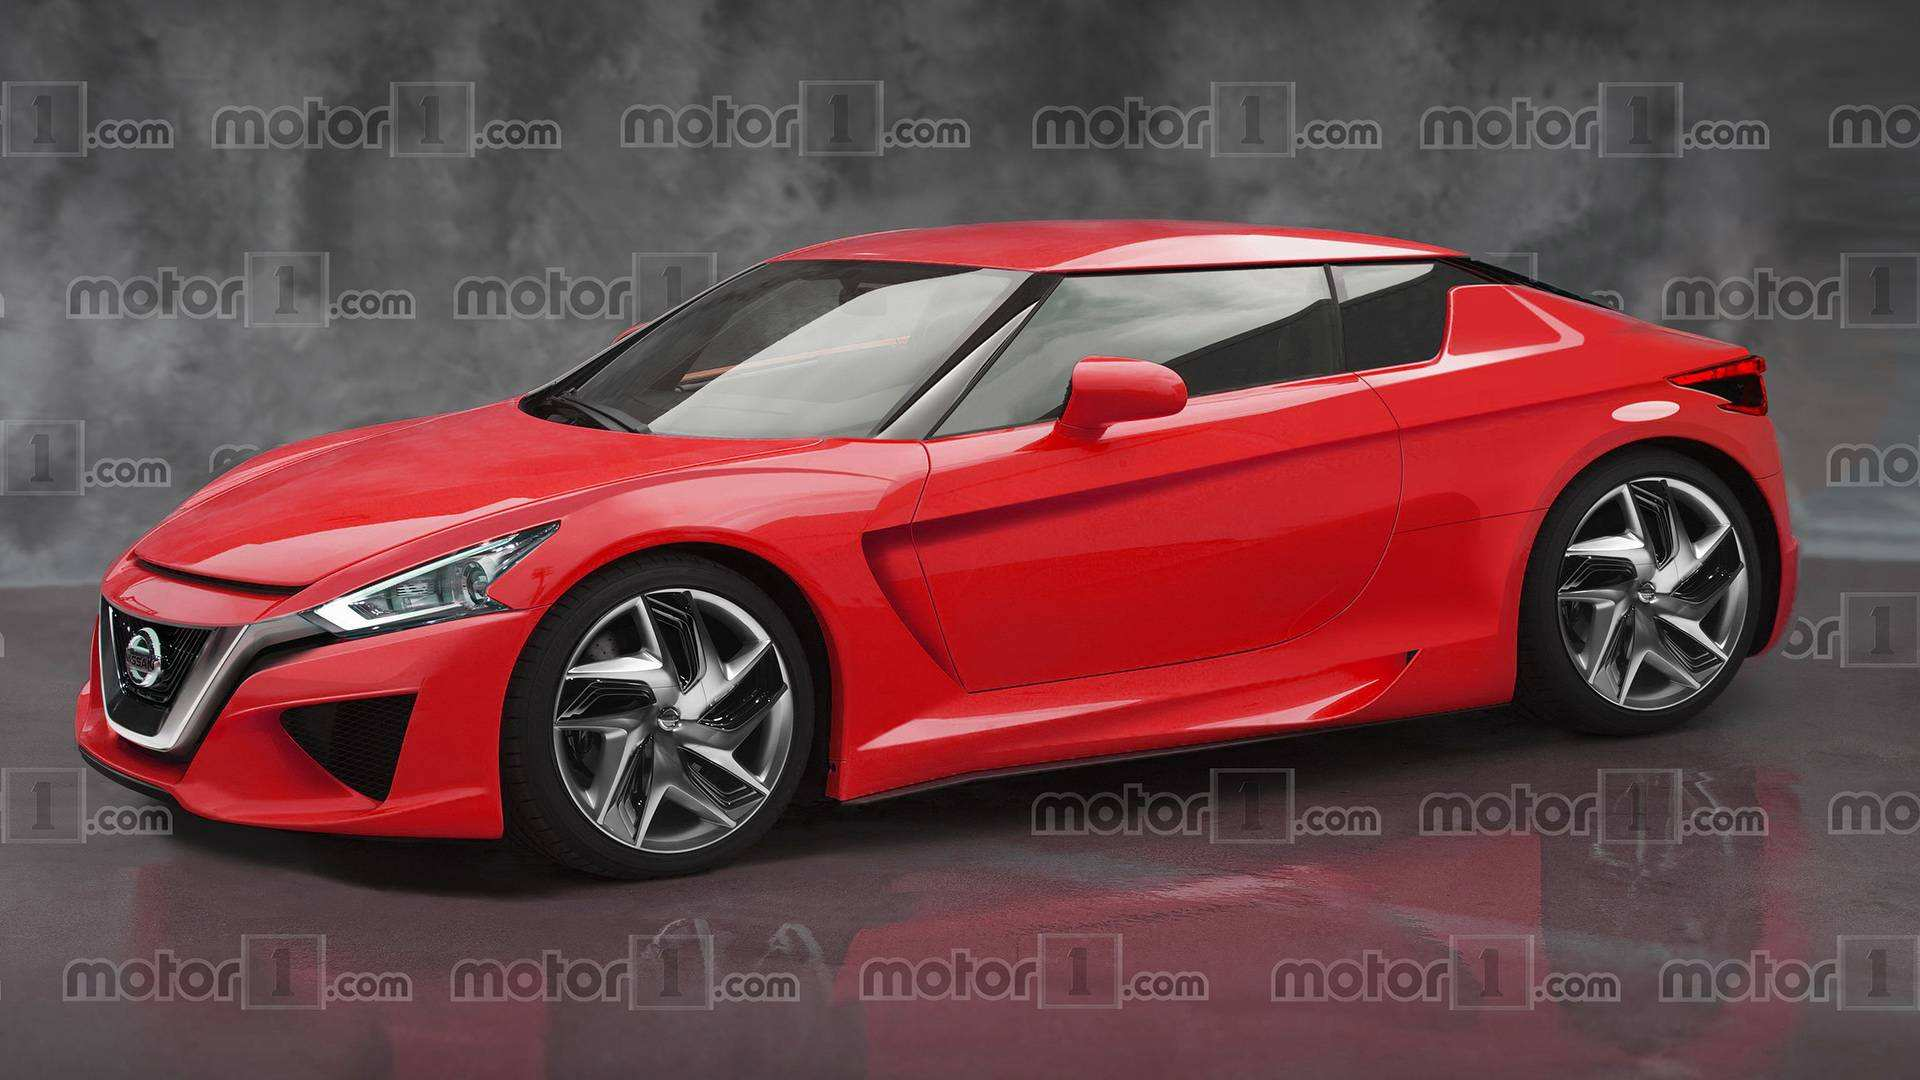 47 The Best Nissan Z Car 2020 Price And Review